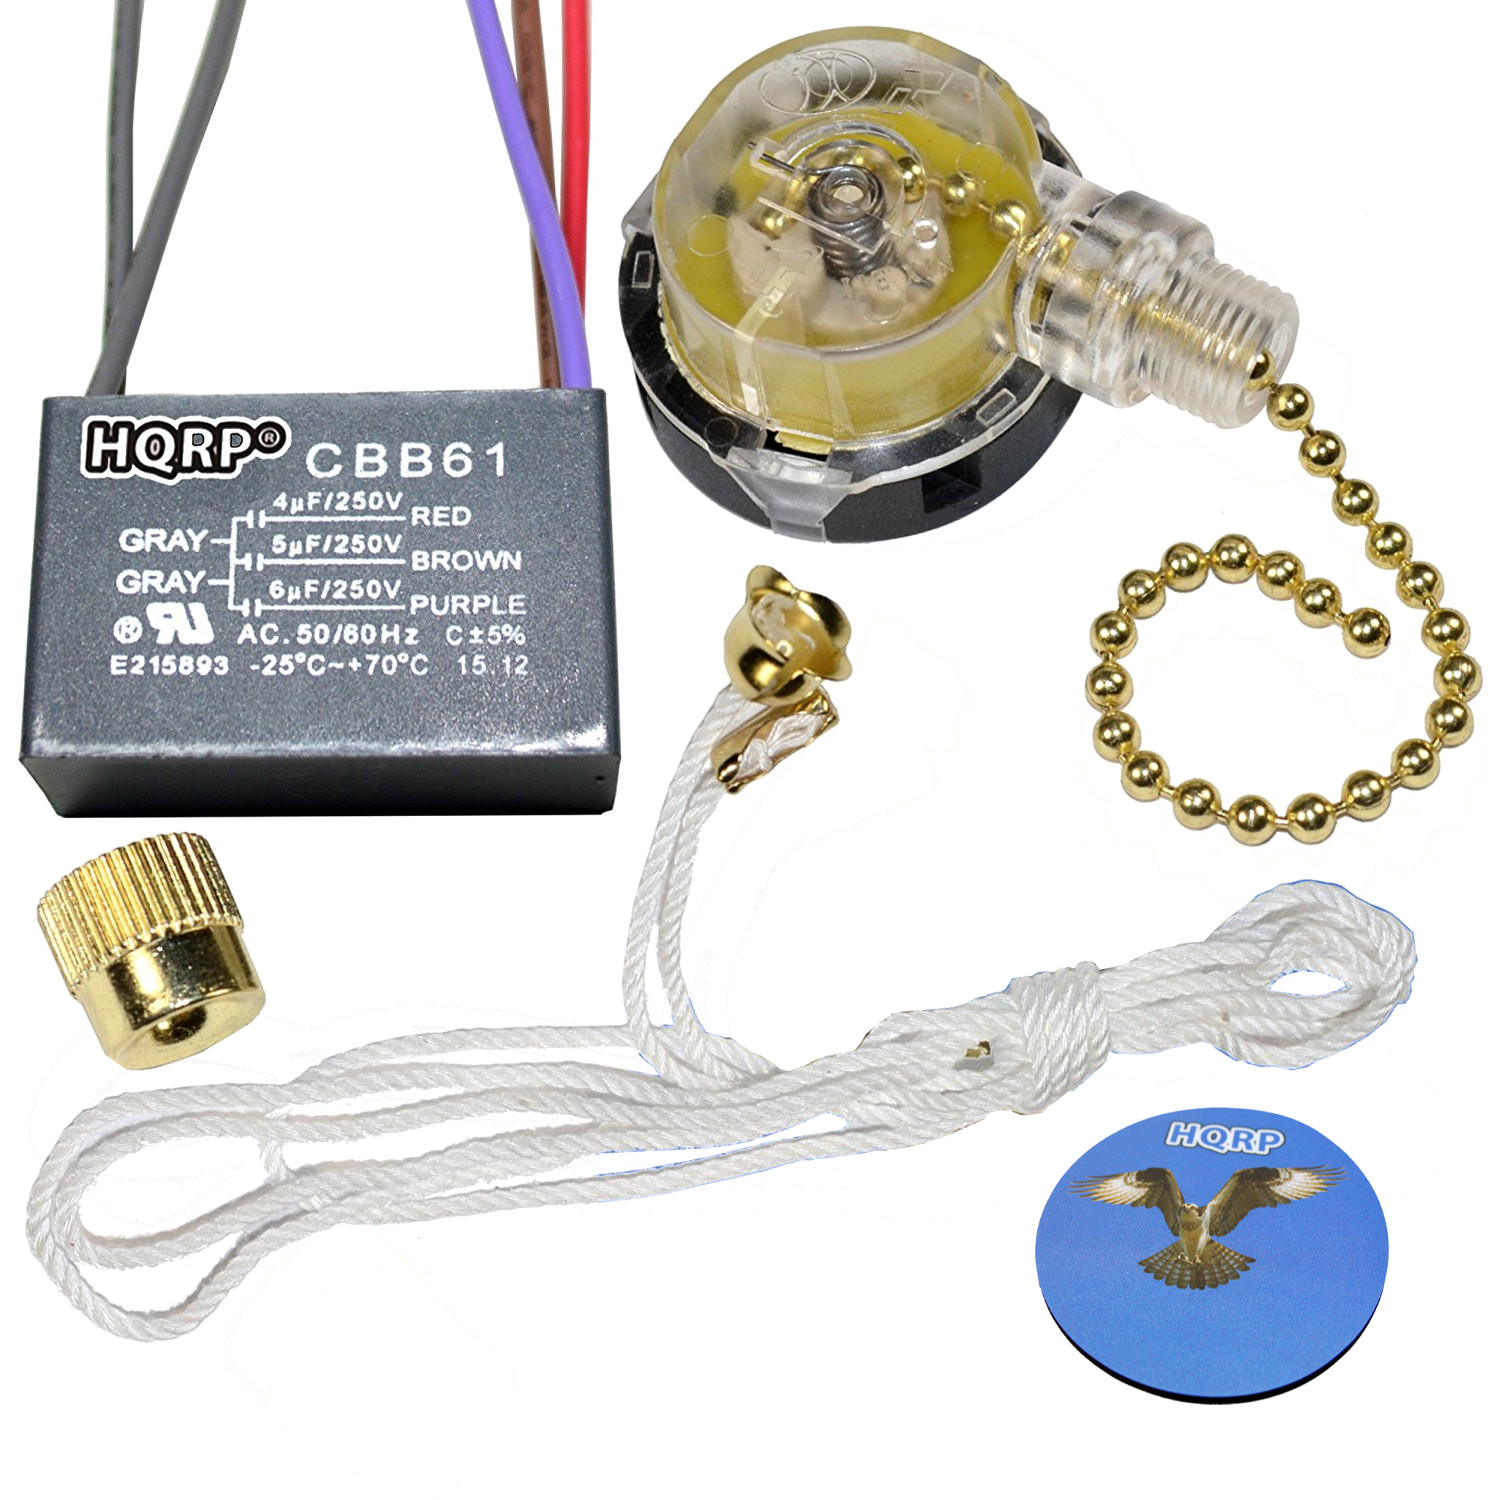 Hqrp Kit Ceiling Fan Capacitor Cbb61 4uf 5uf 6uf 5